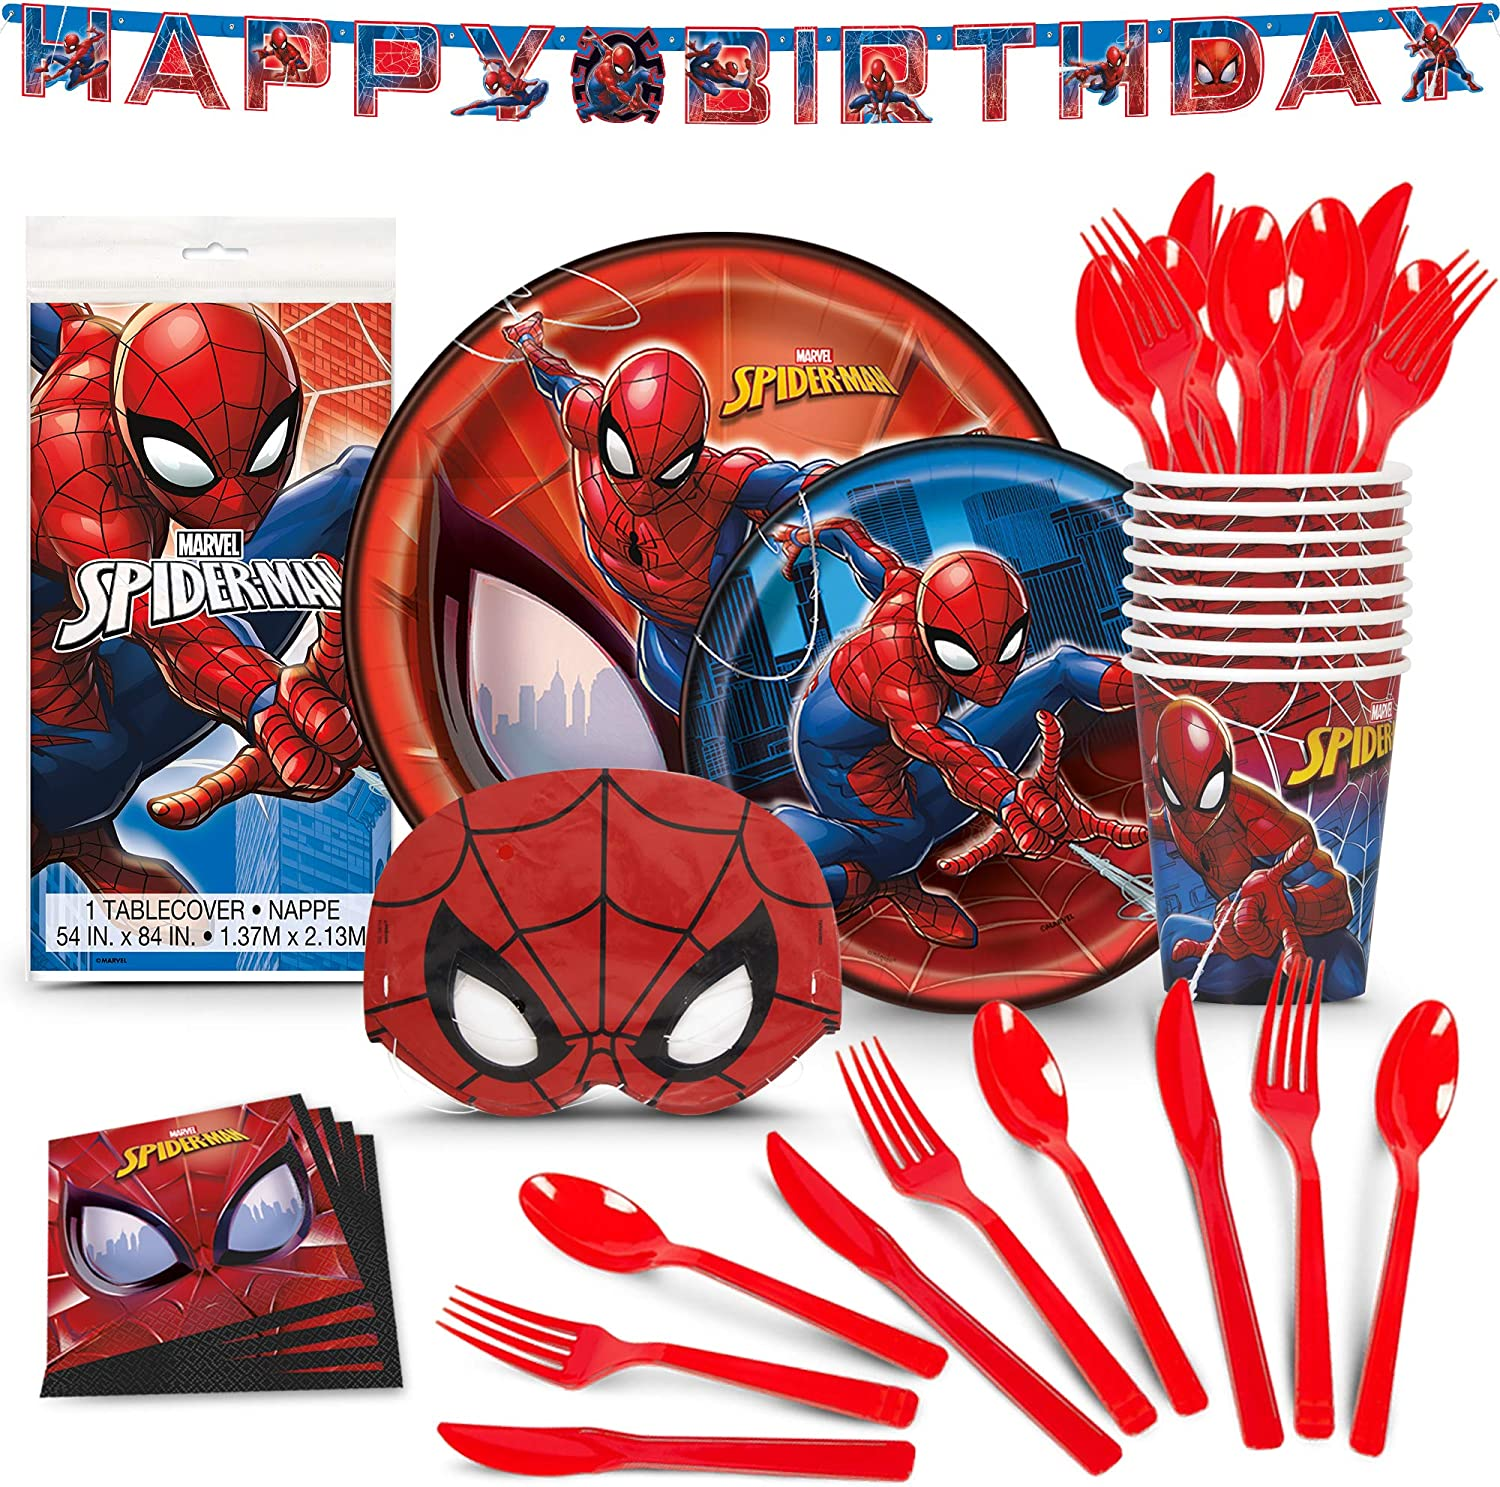 Spiderman Birthday Party Supplies Includes 86 Premium Pieces With Extra Cutlery and Spiderman Masks for Kids Superhero Party Decorations for Boys and Men